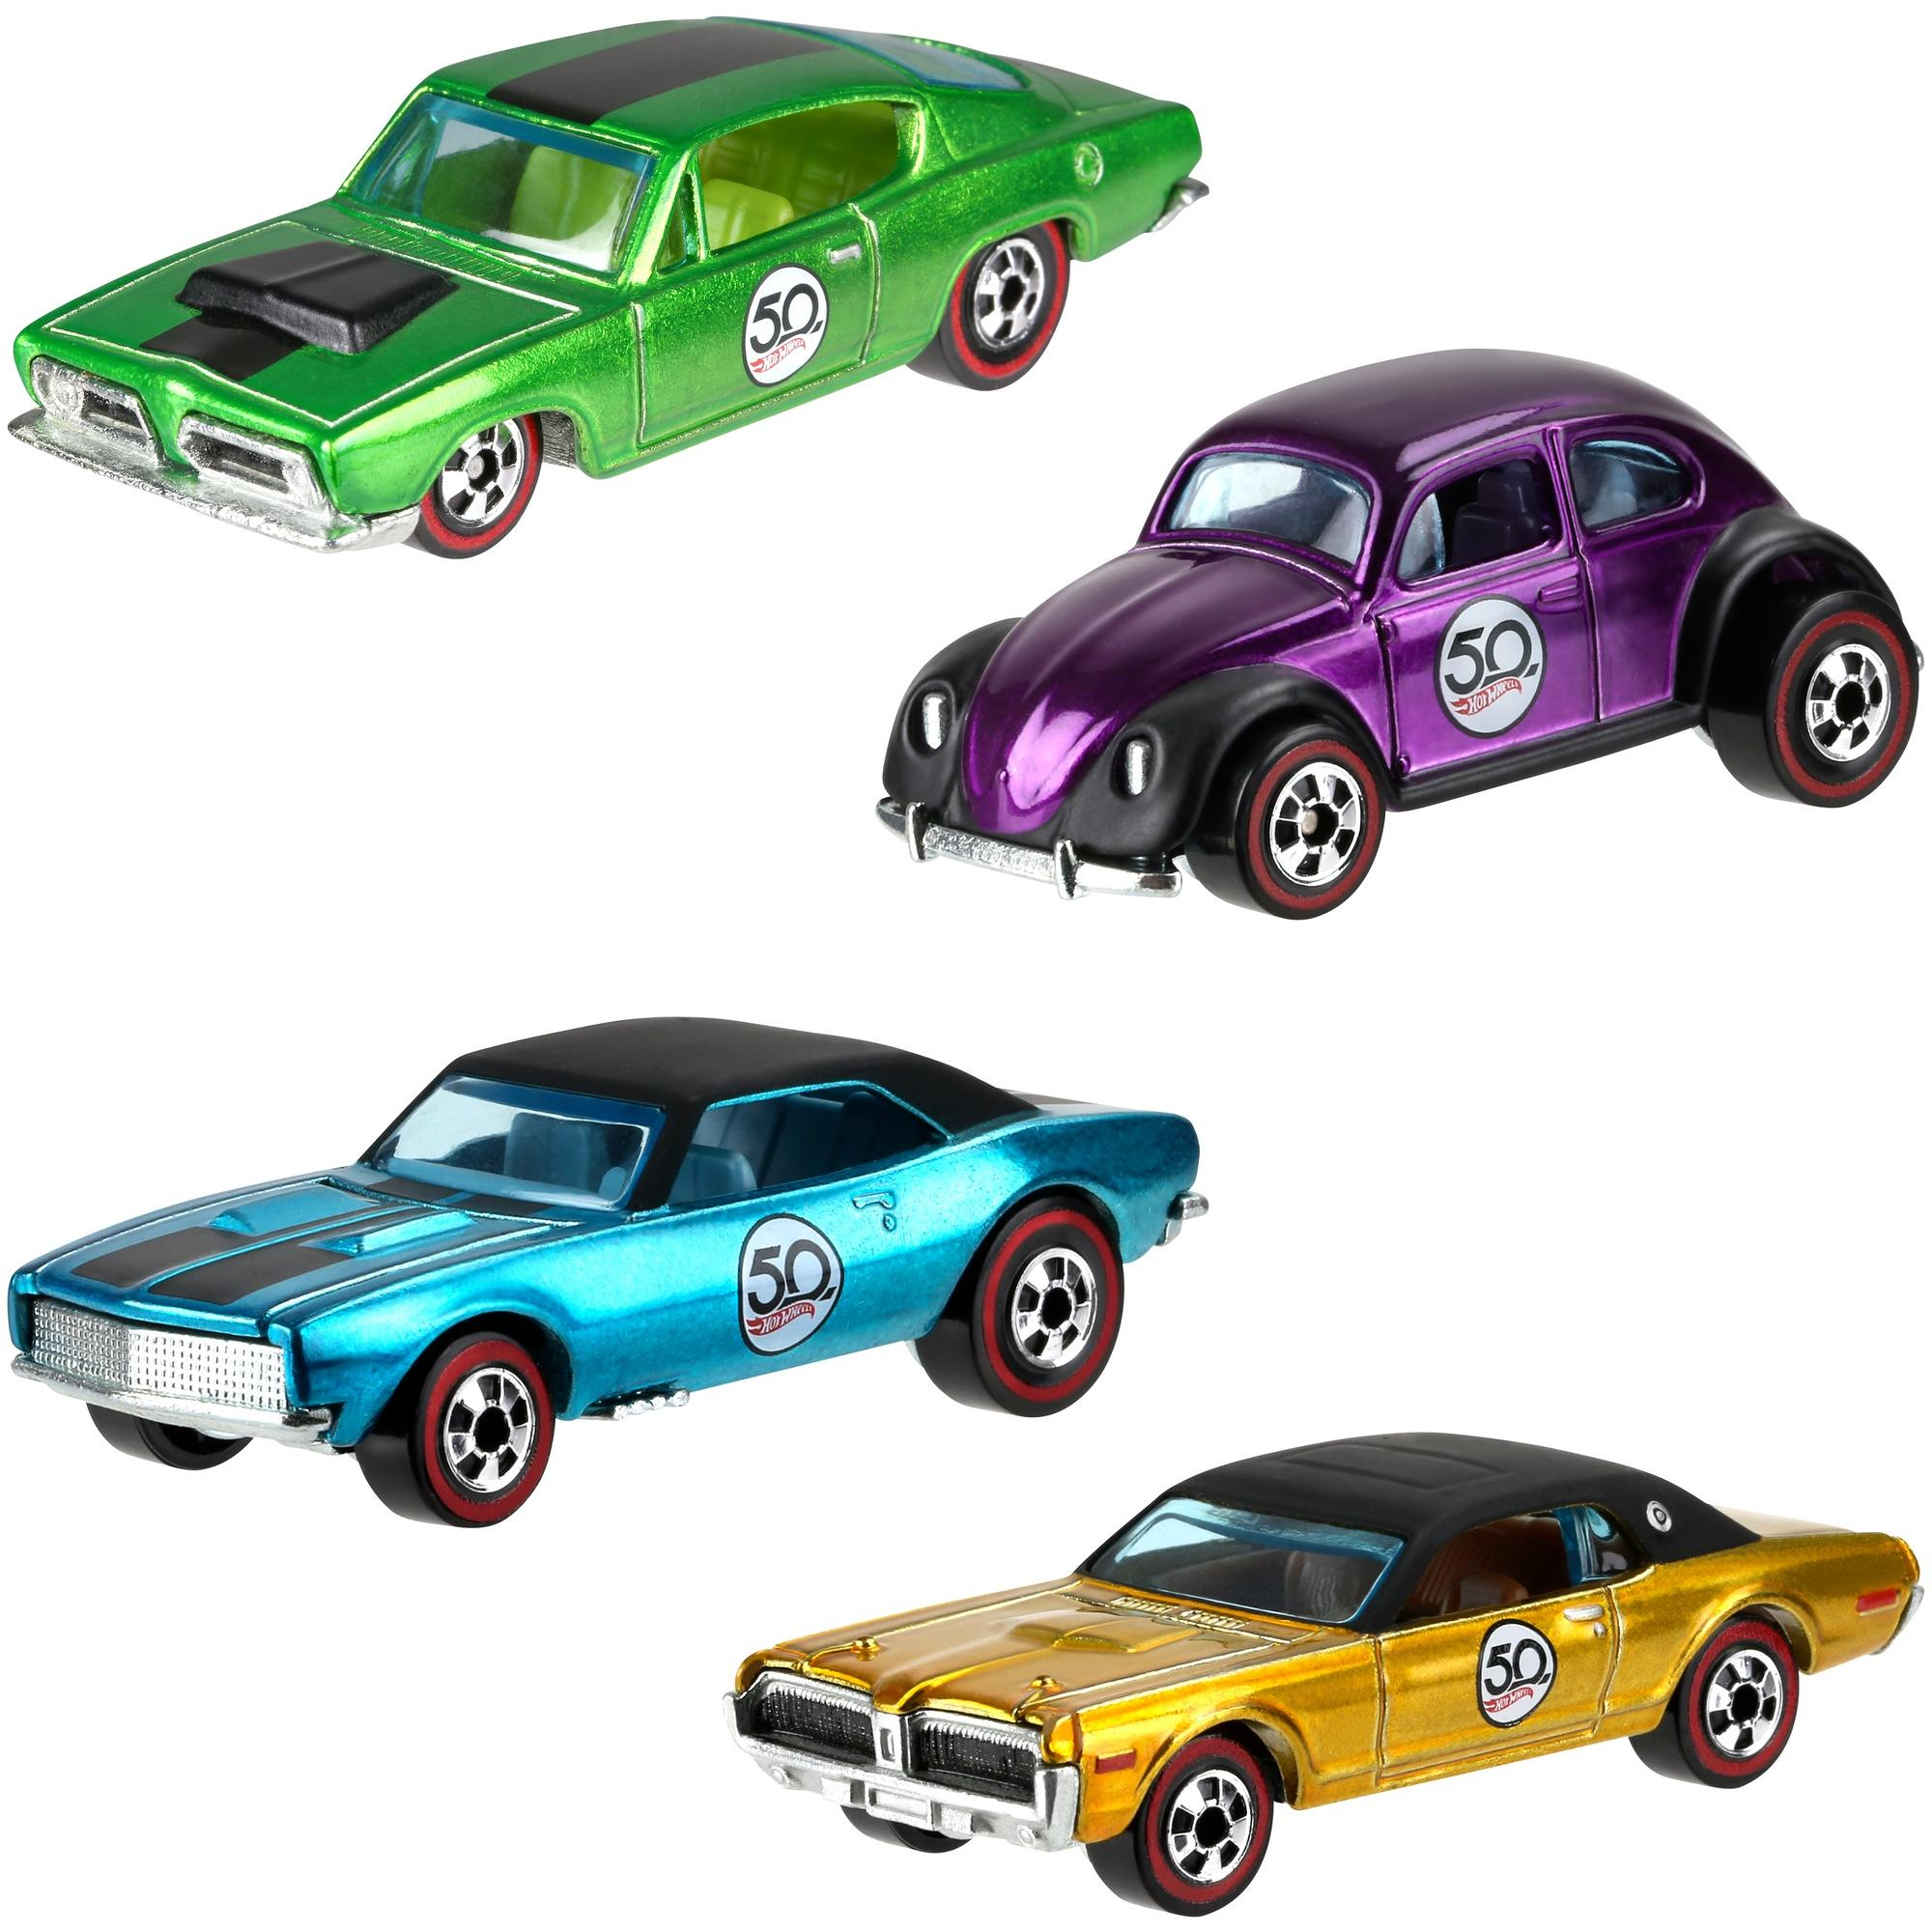 Hot Wheels 50th Anniversary Die-Cast Vehicle (Styles May Vary)